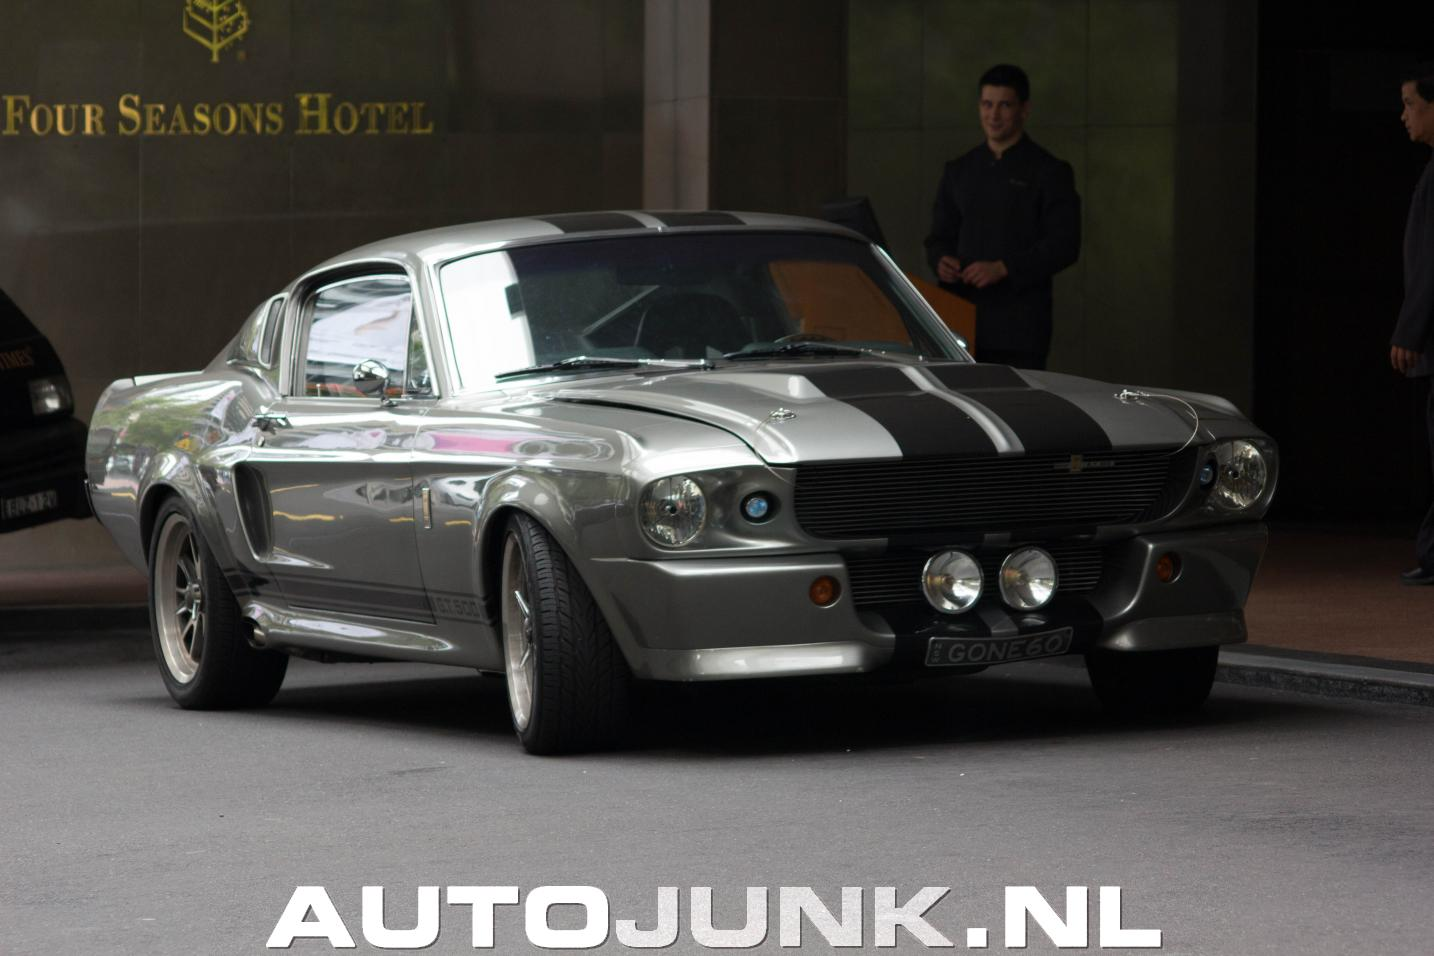 1967 ford mustang shelby gt500 eleanor wallpaper 1967 Ford Mustang 1434x956